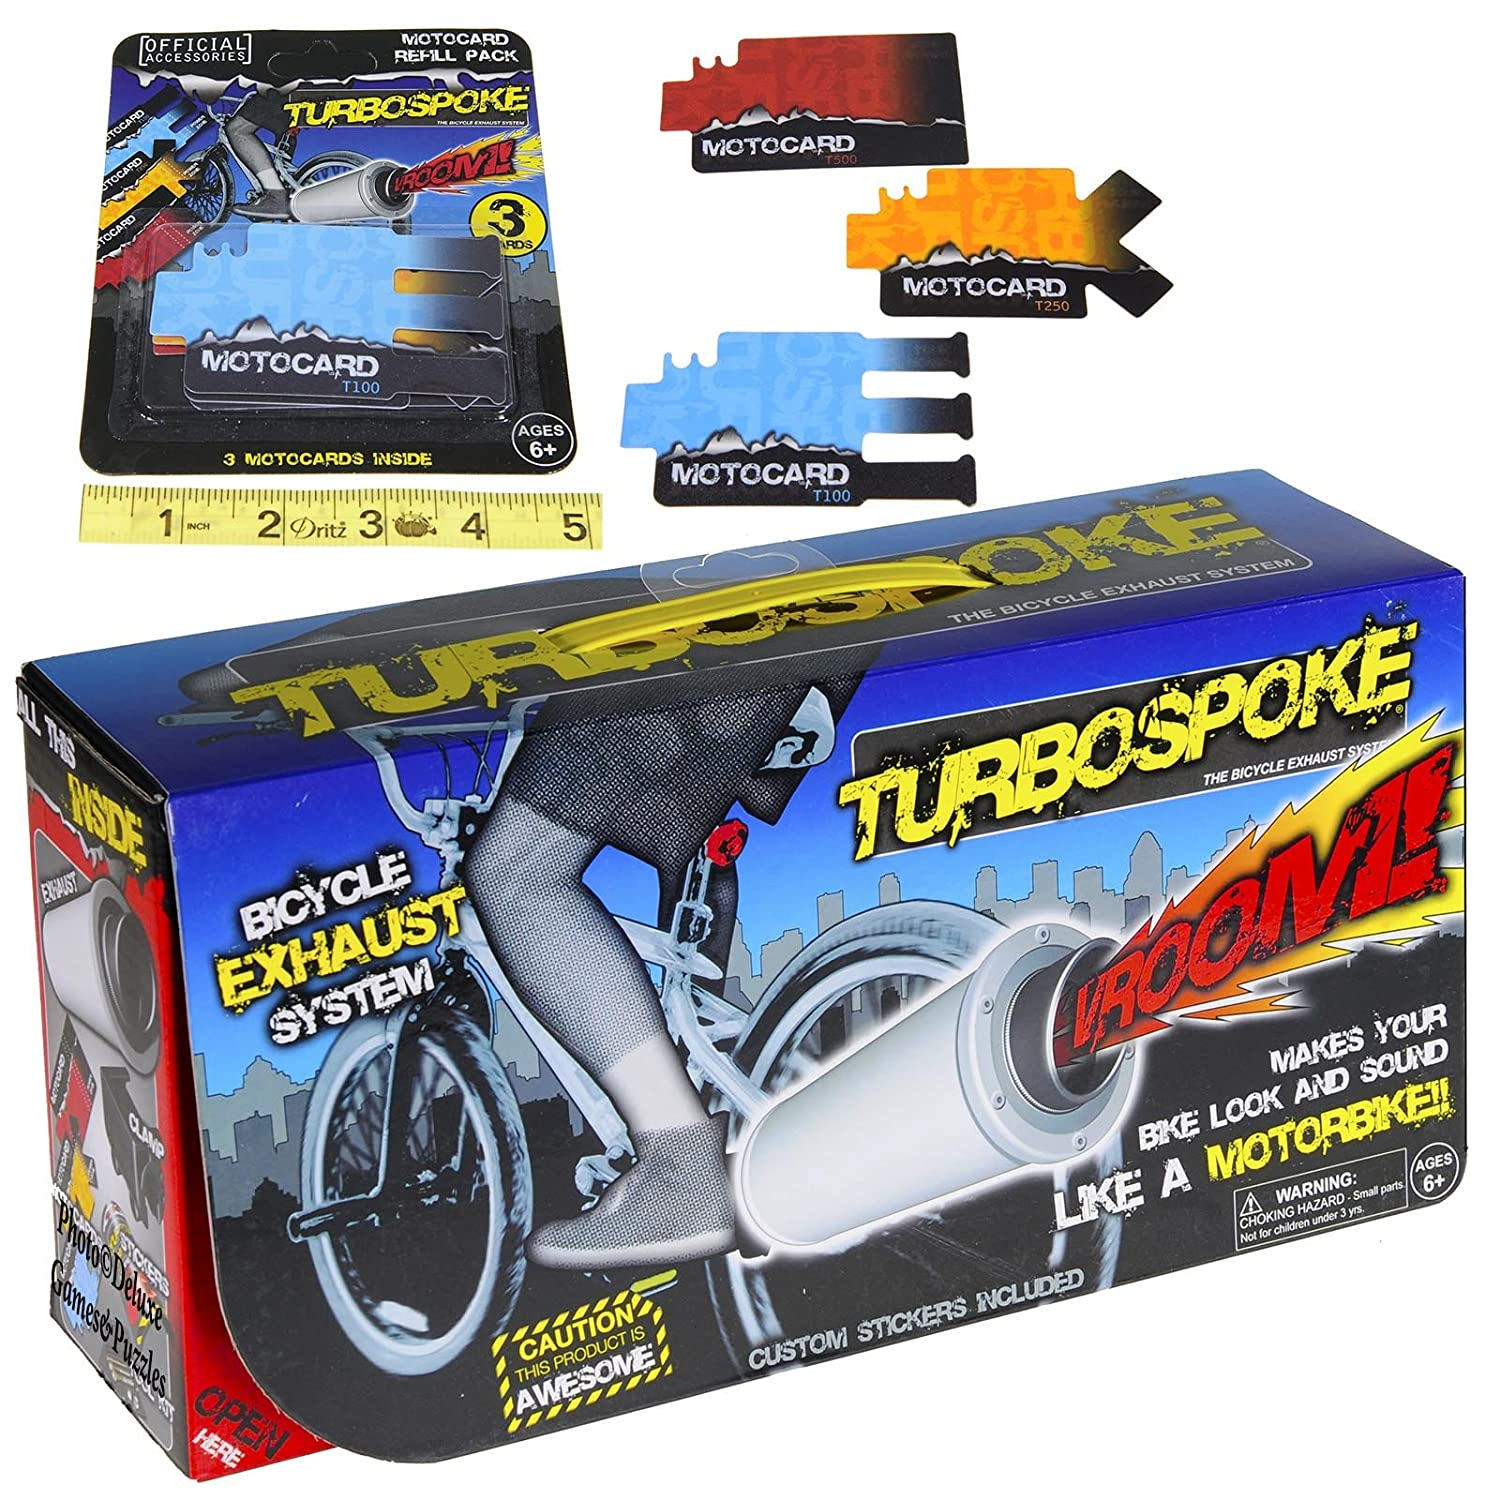 TurboSpoke Bicycle Exhaust System Add-On Accessory _ with BONUS MotoCard Refill 3-Pack _ Bundle